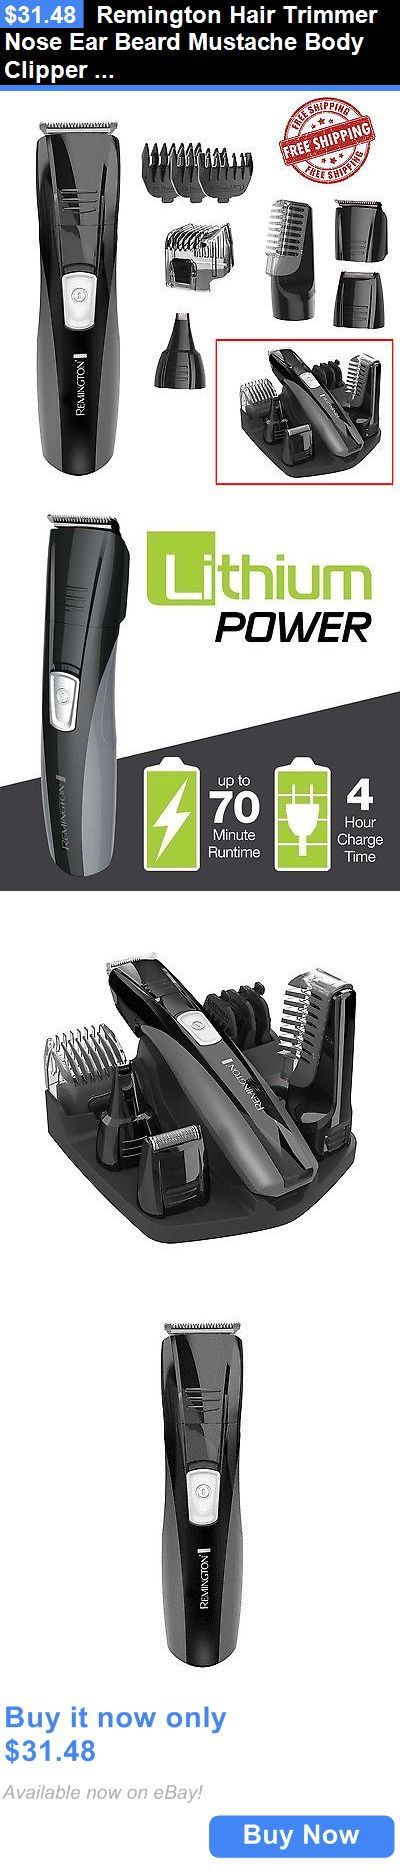 Shaving: Remington Hair Trimmer Nose Ear Beard Mustache Body Clipper Cordless Rechargeabl BUY IT NOW ONLY: $31.48